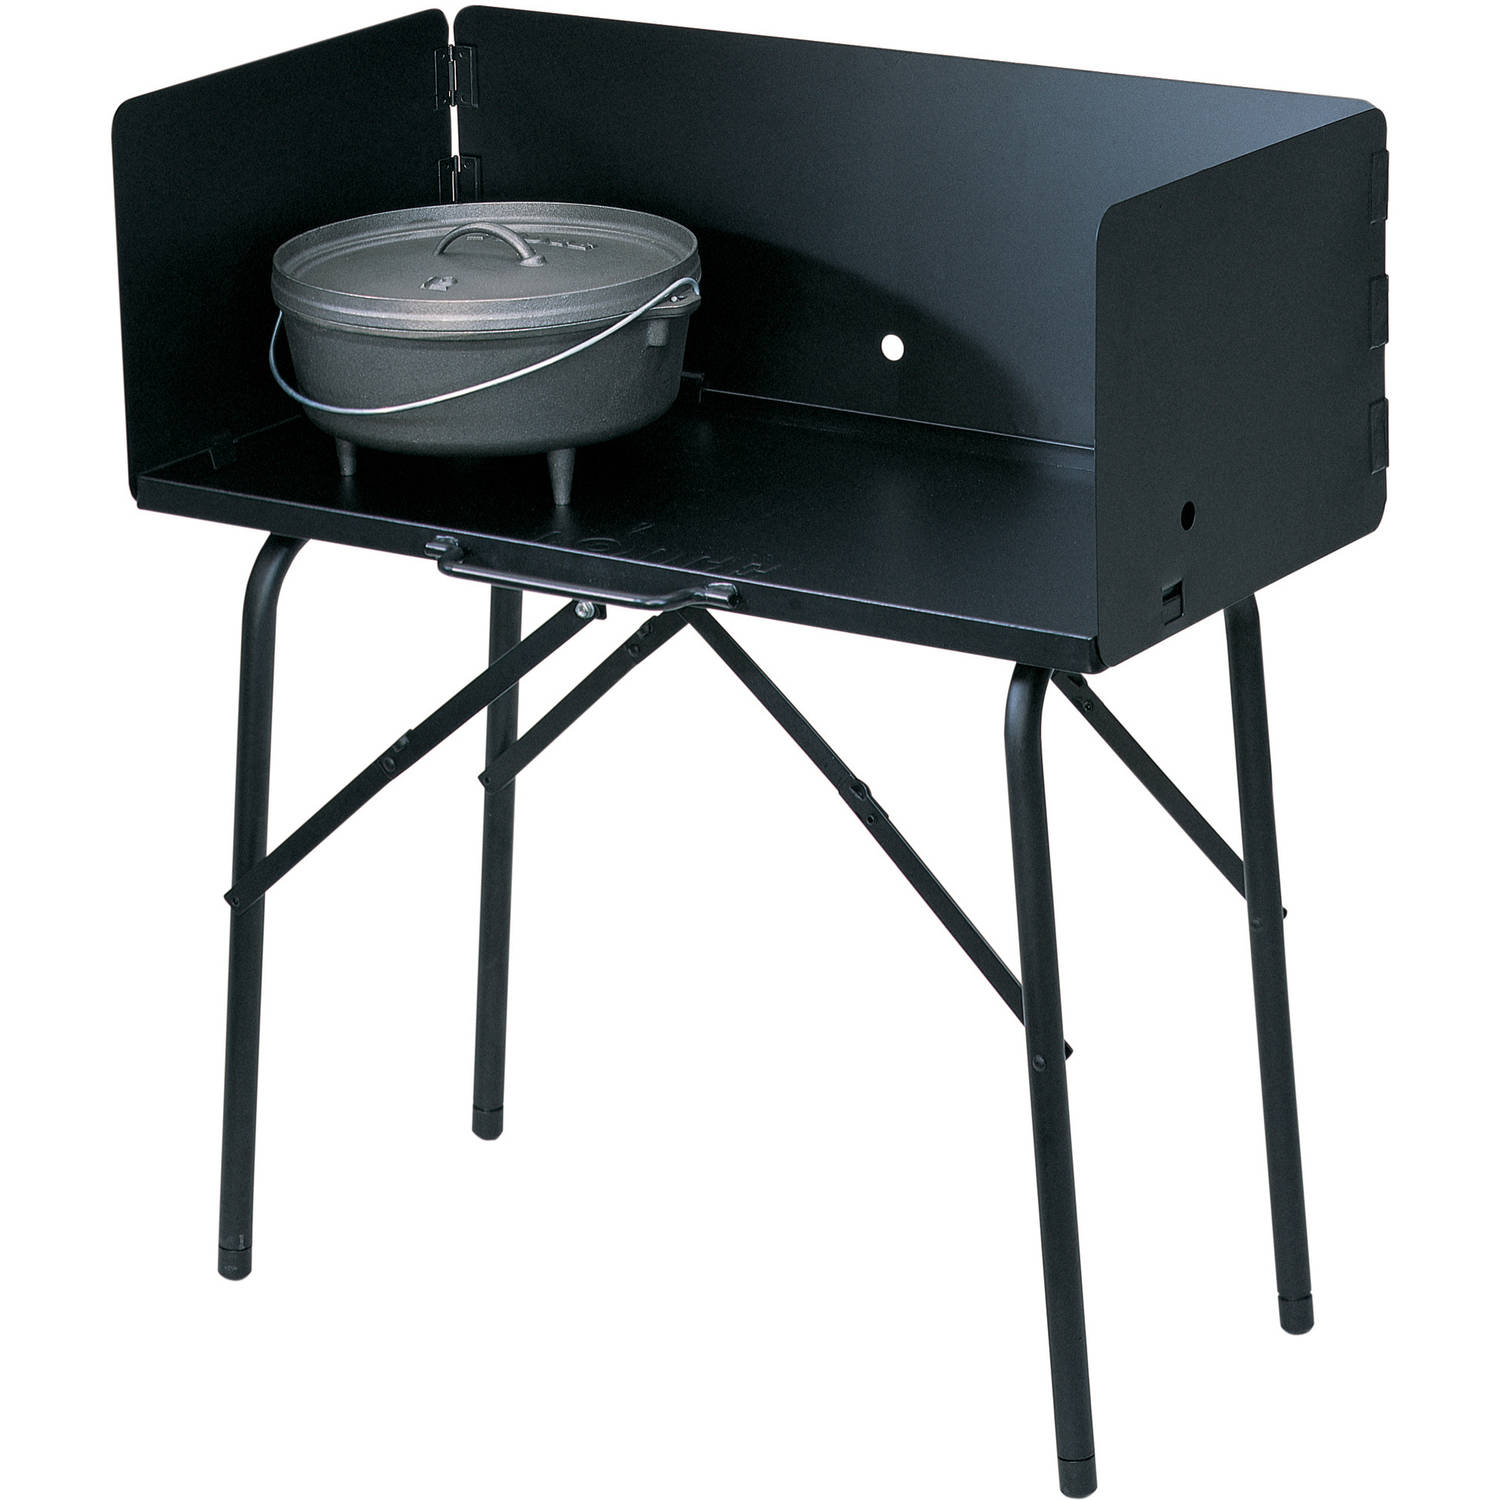 Lodge Camp Dutch Oven Cooking Table, A5-7